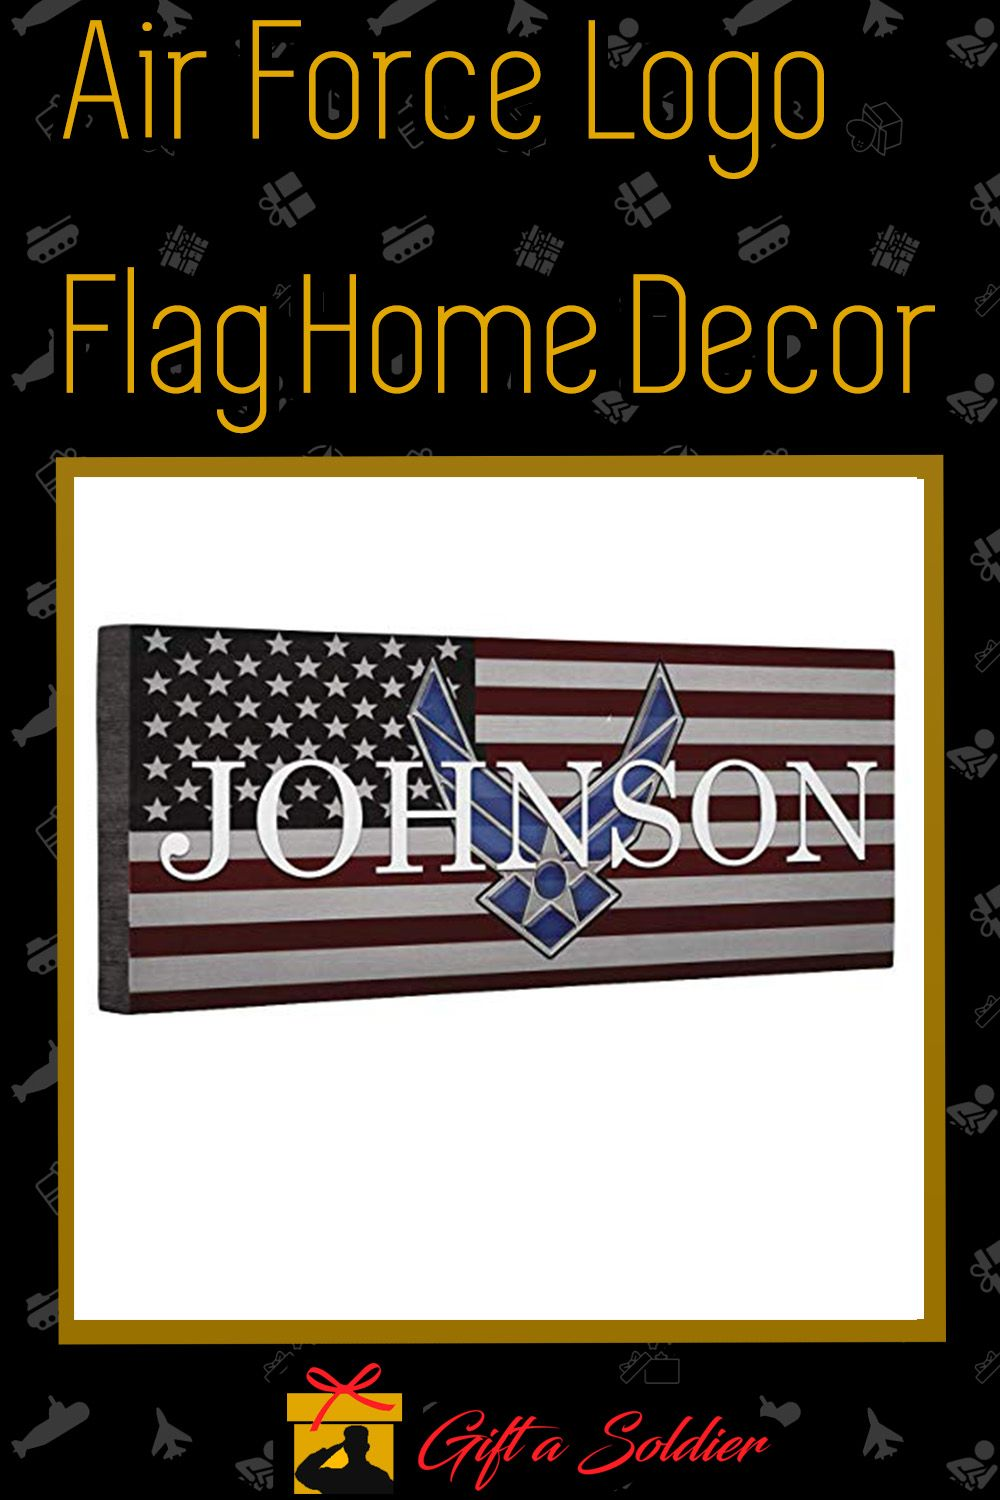 Air Force Logo Flag Home Decor in 2020 Military gifts